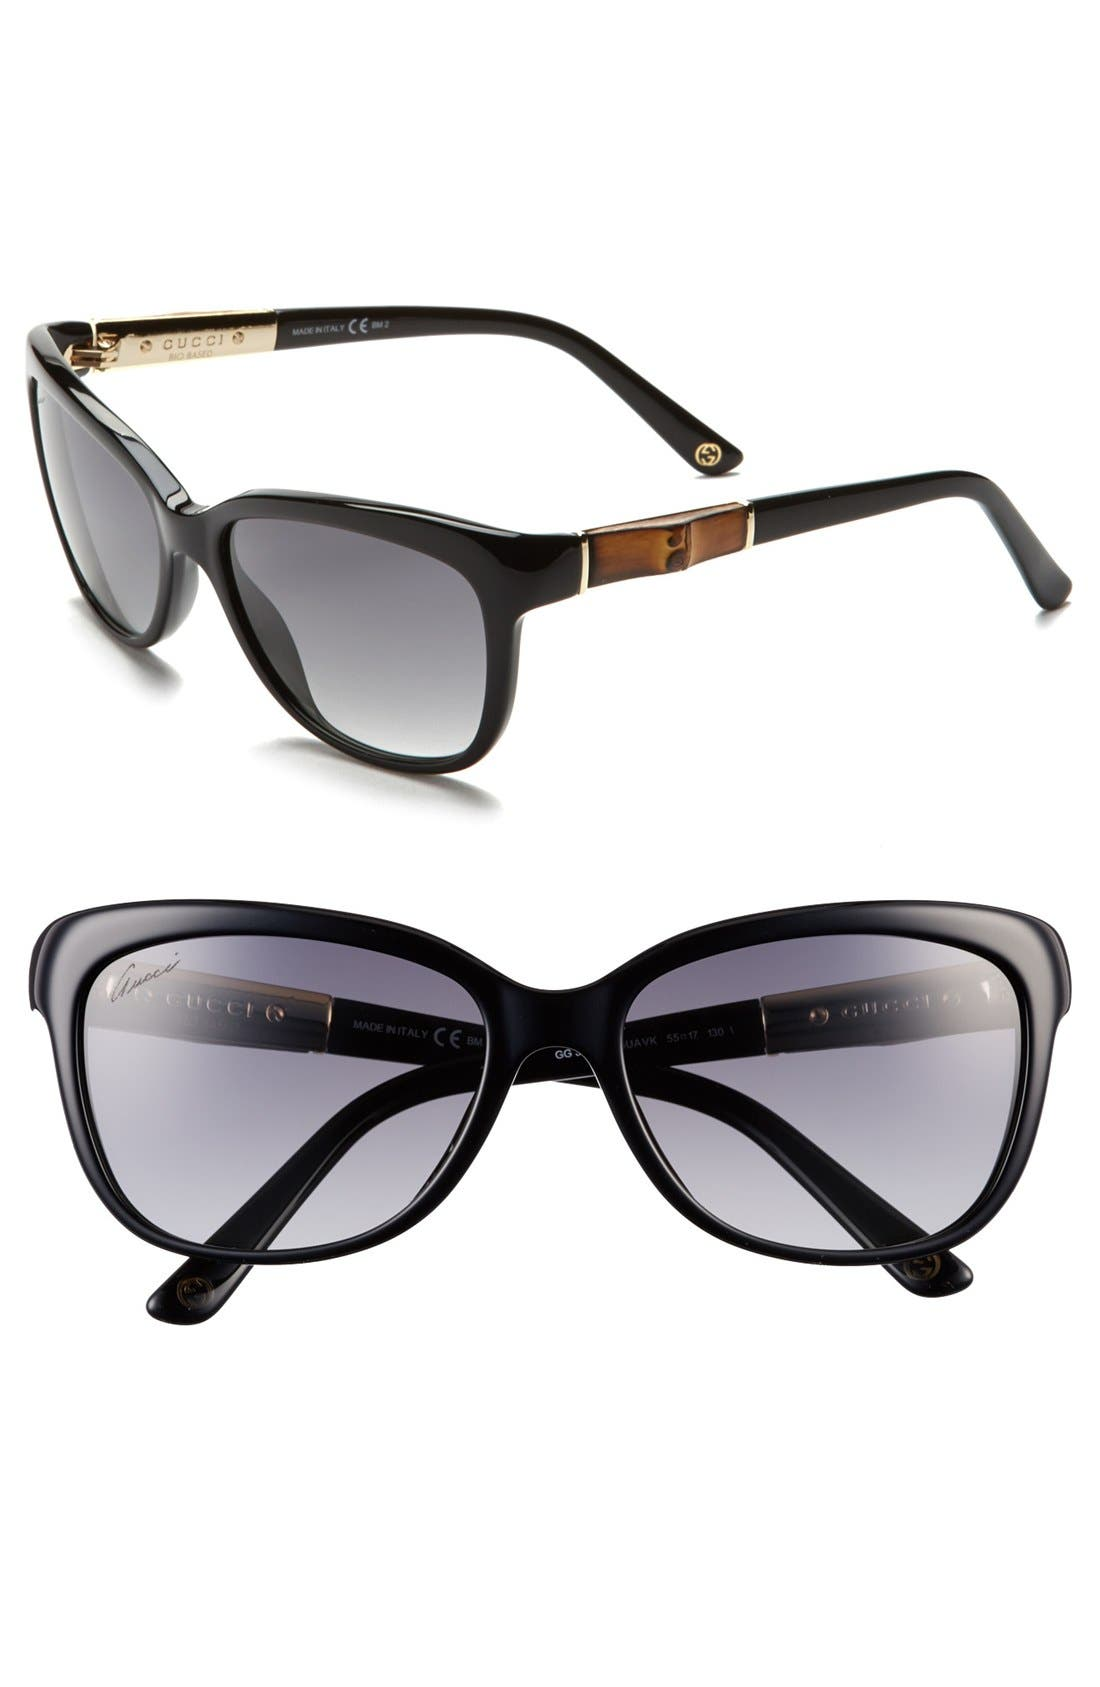 Alternate Image 1 Selected - Gucci 55mm Bamboo Temple Sunglasses